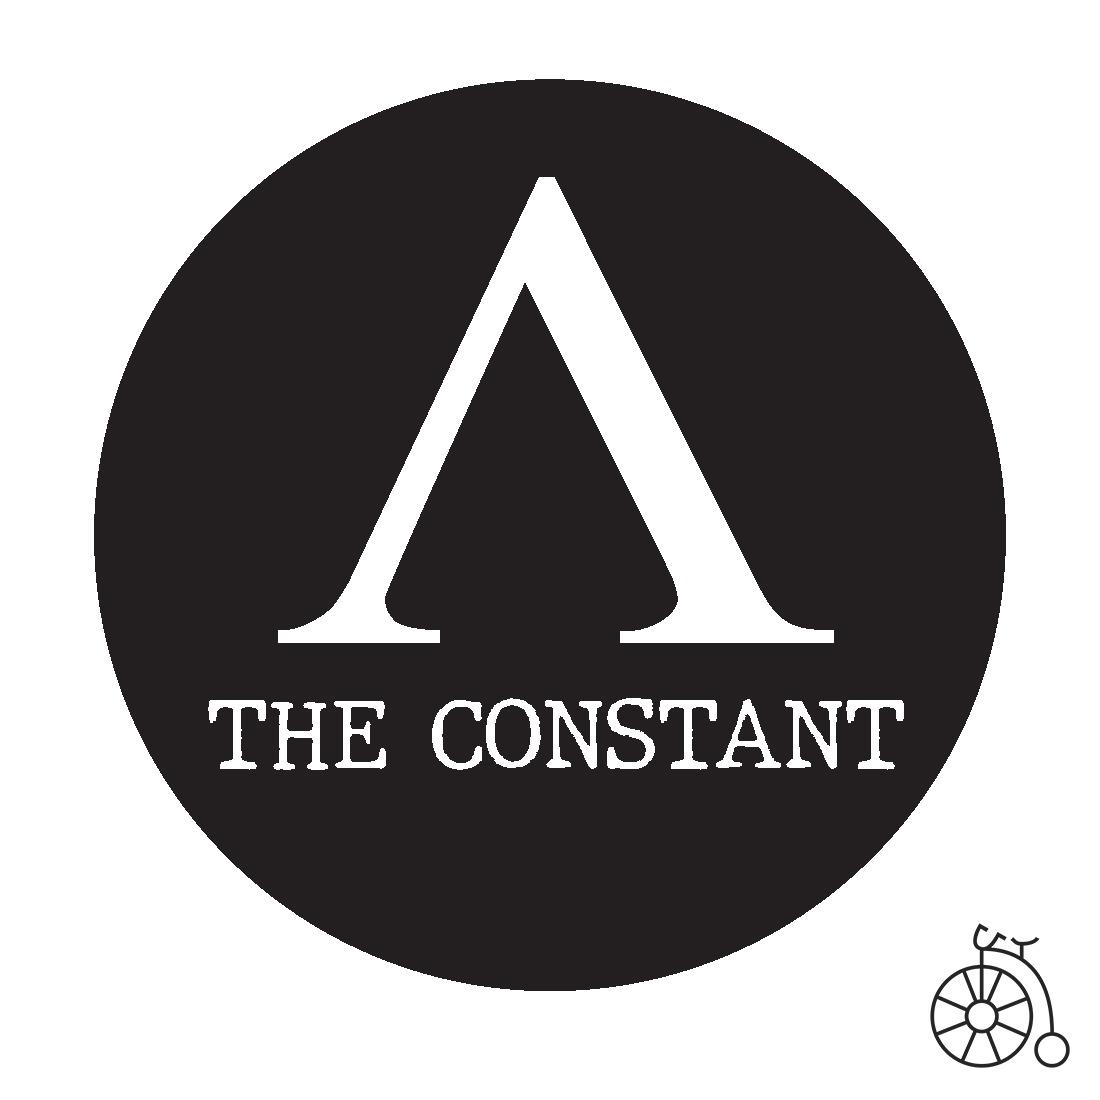 The Constant: A History of Getting Things Wrong